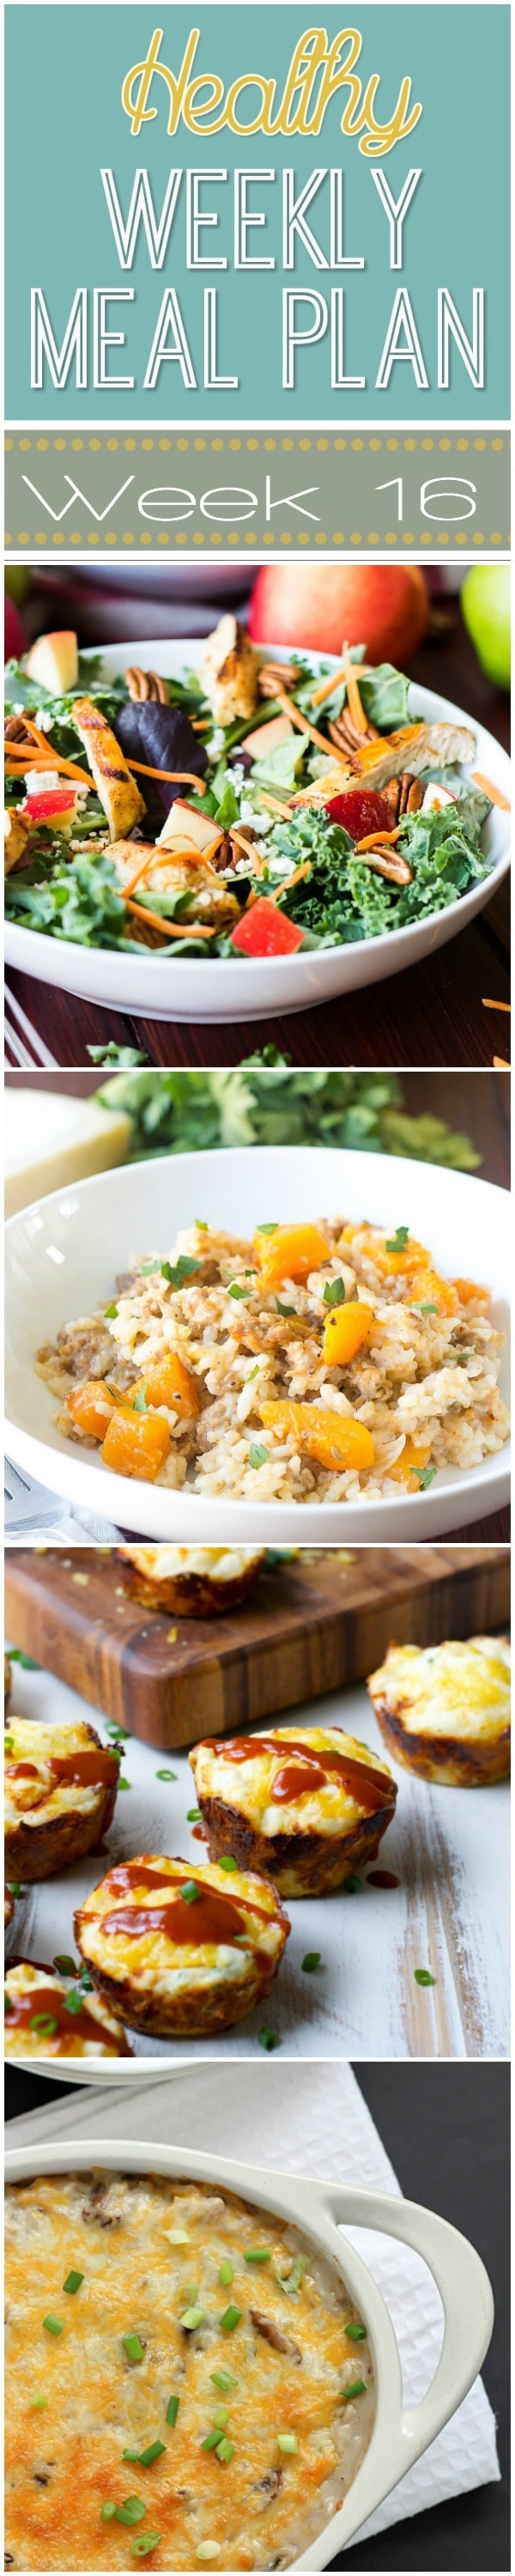 Healthy Weekly Meal Plan #16 - there are all sorts of goodies in this week's meal plan! Healthy breakfast, lunch, dinner and even a snack and dessert recipe too! You won't want to miss this one!